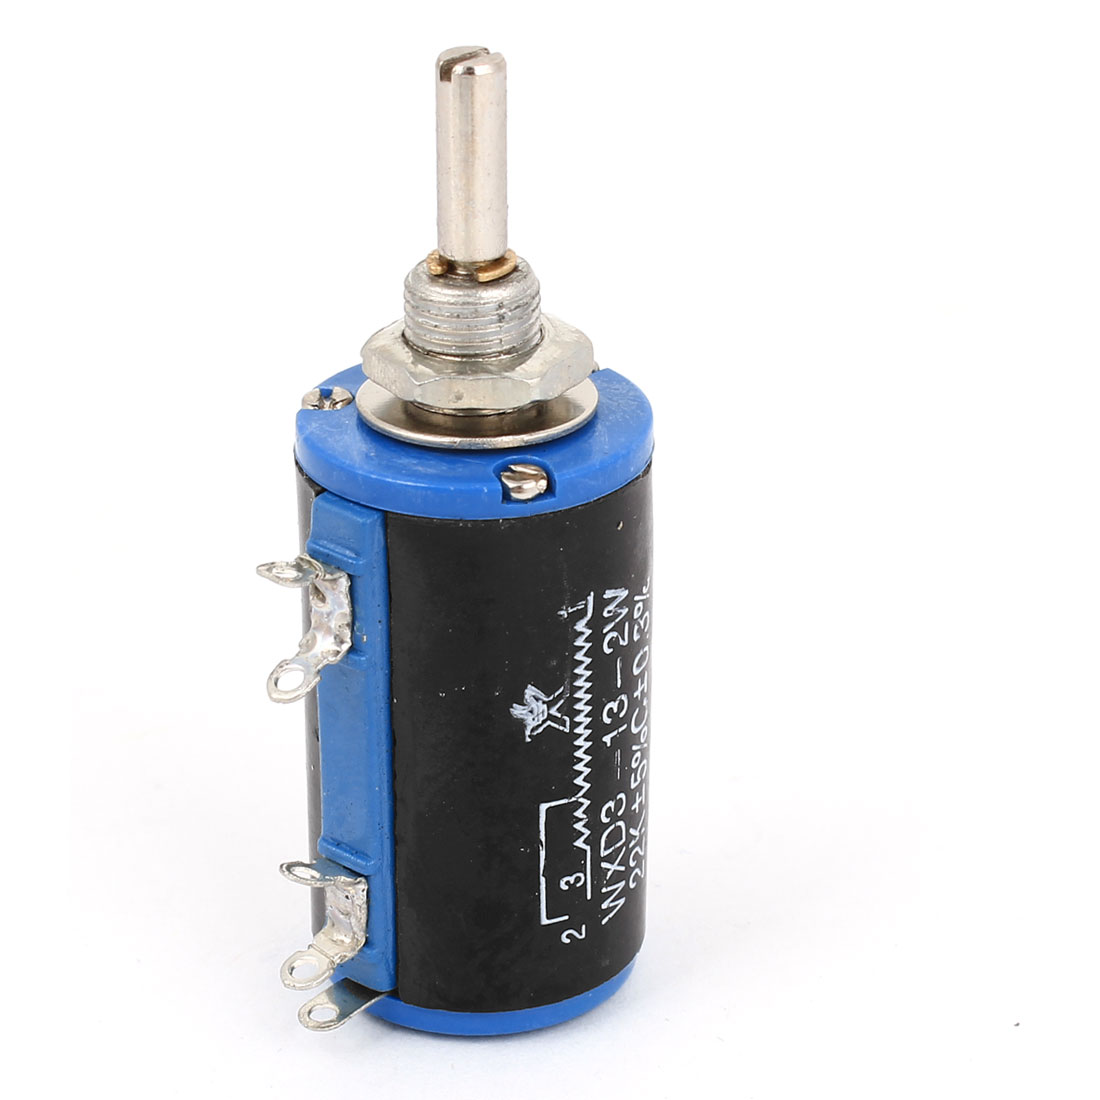 WXD3-13 22K ohm 2W 4mm Shaft 10 Turn Rotatable Wire Wound Potentiometer